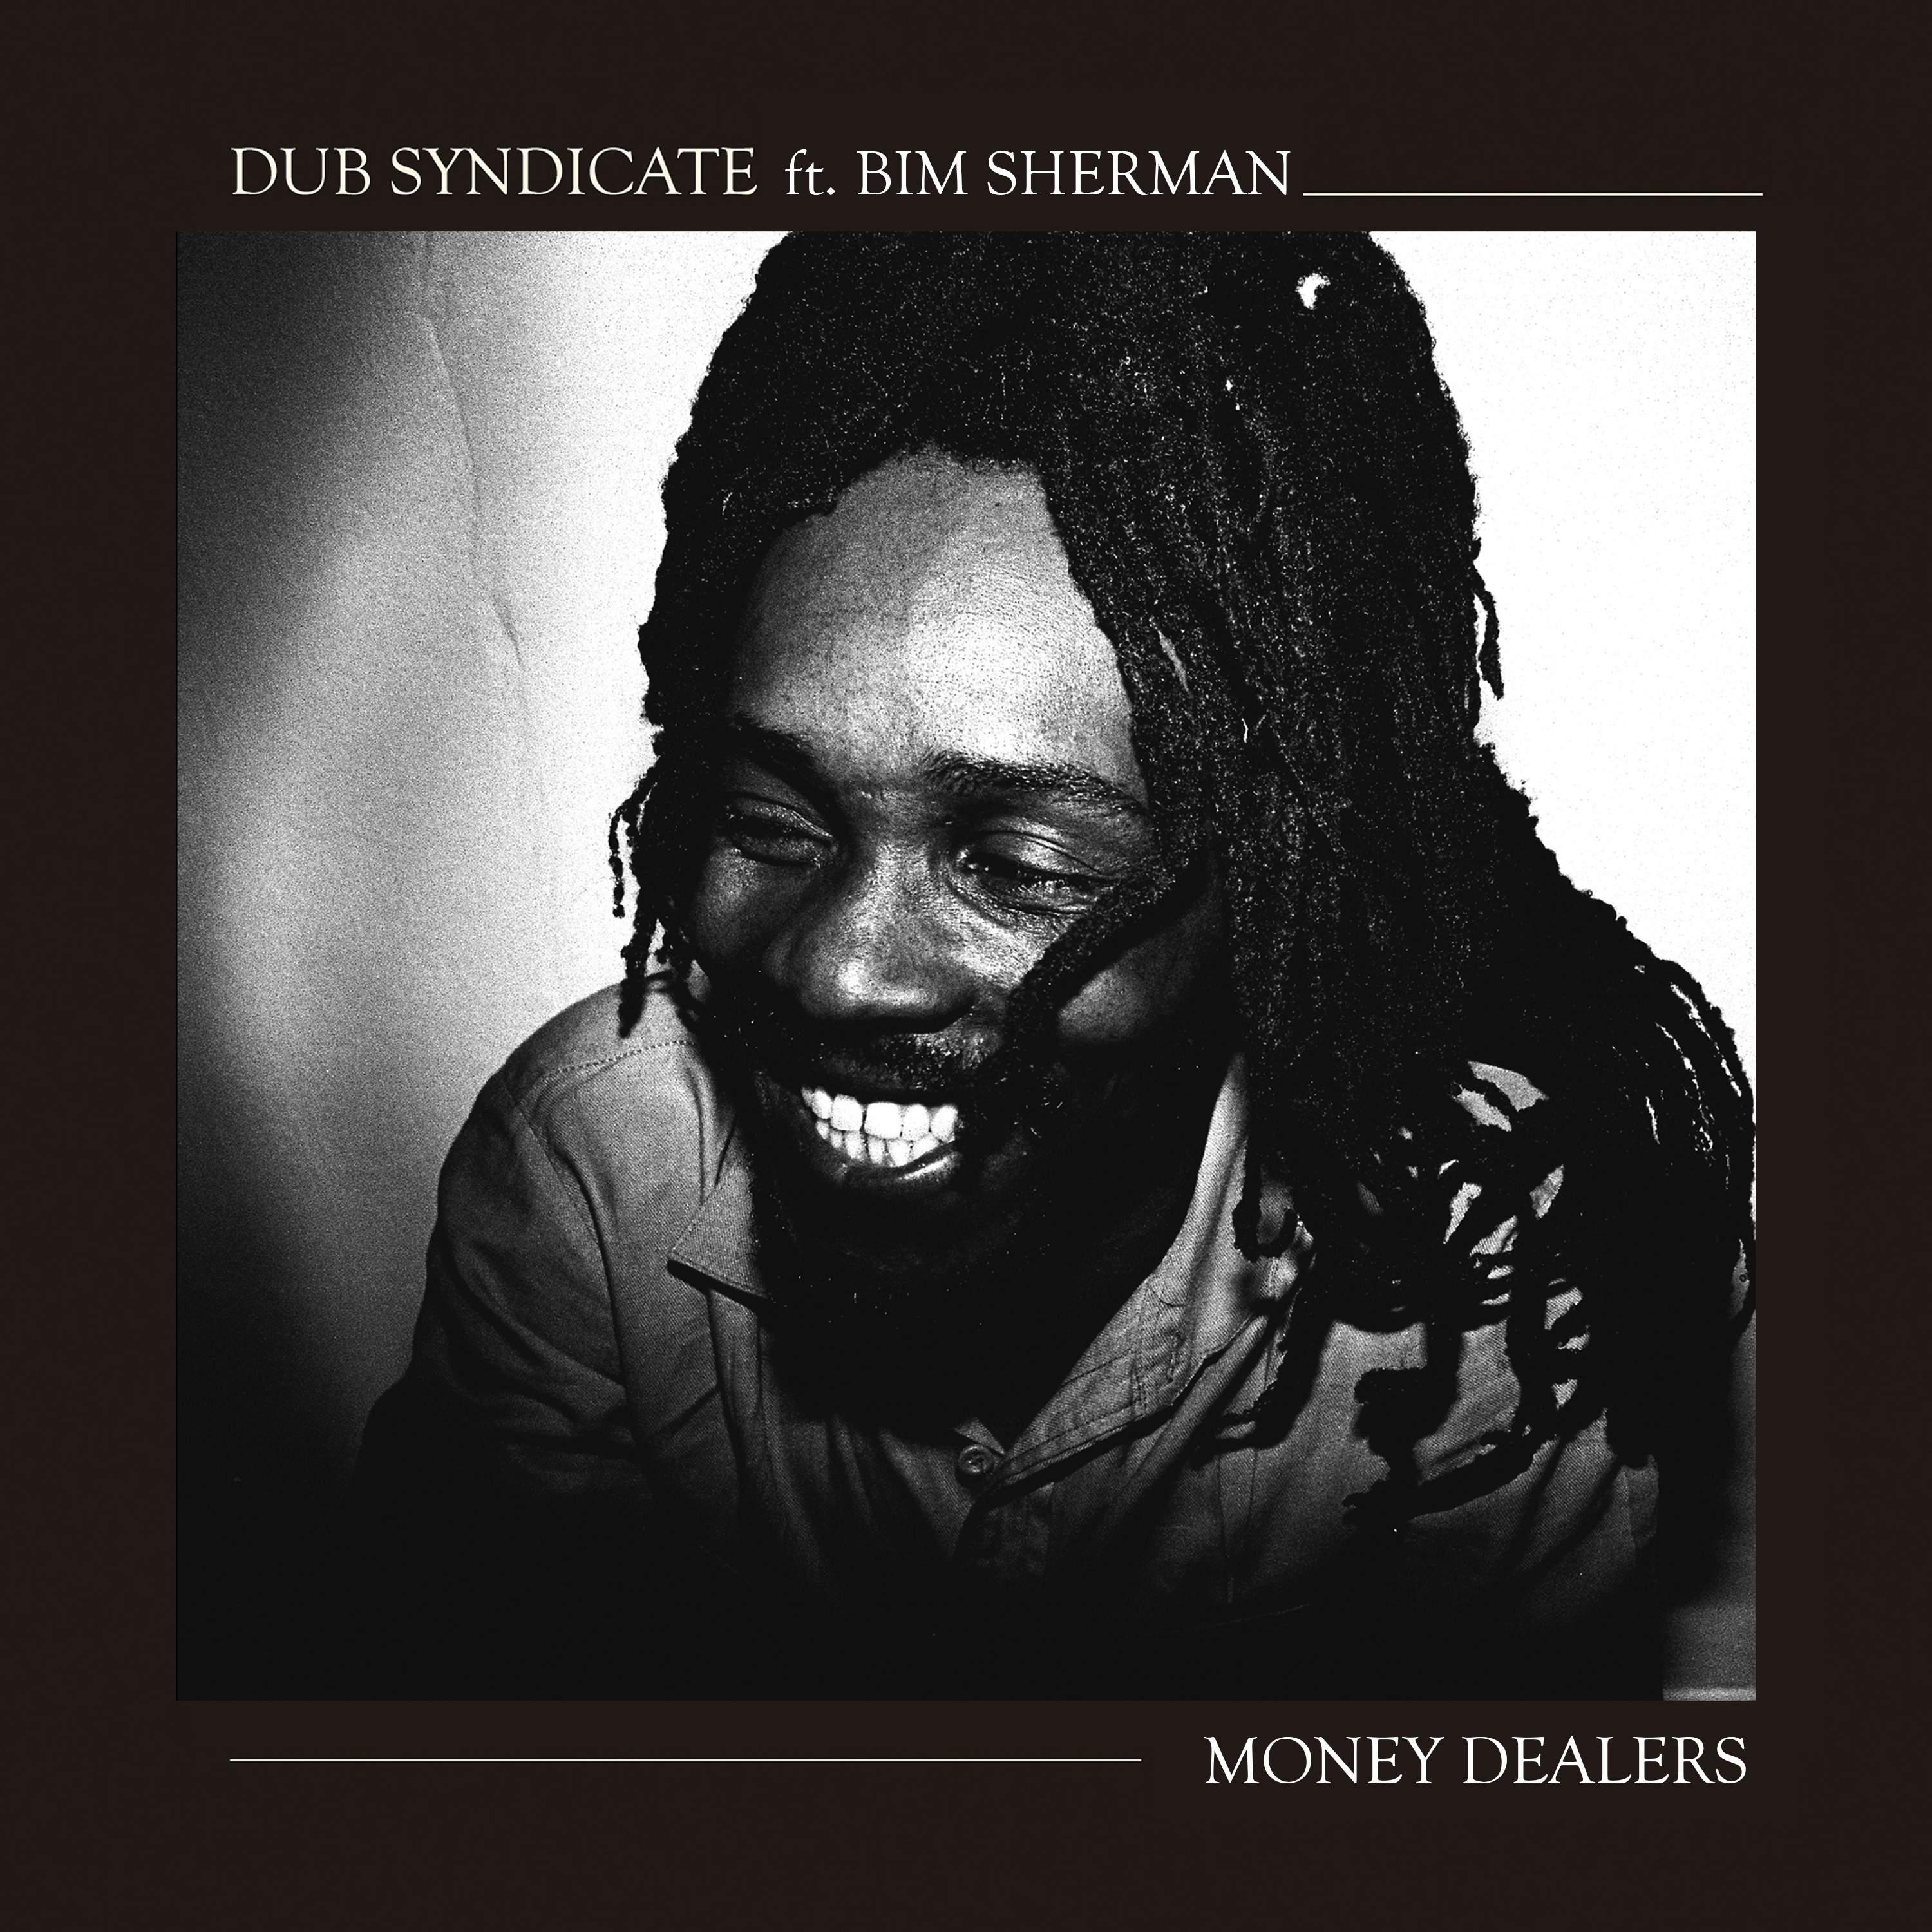 Dub Syndicate, Money Dealers, Test Pressing, Exclusive, Dub, Adrian Sherwood, Test Pressing Hero